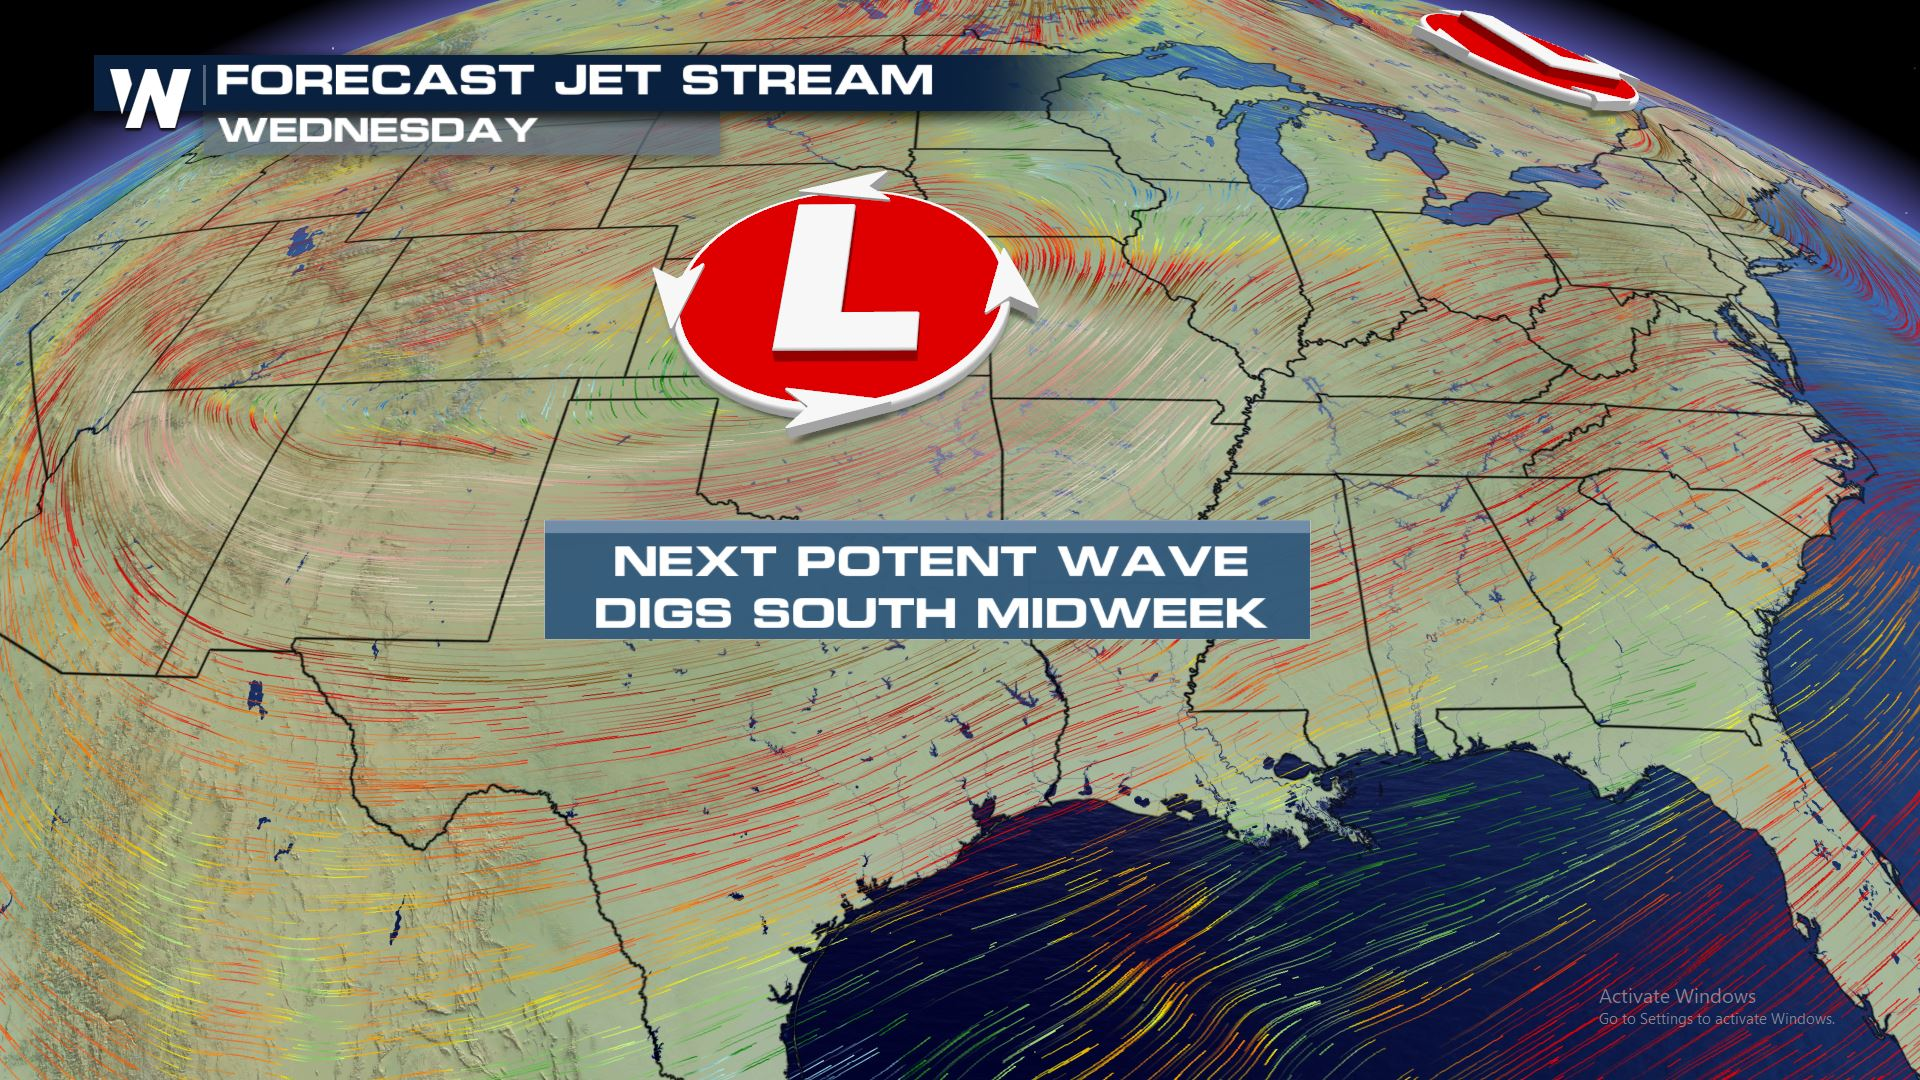 Mid-Week System Could Bring Snow to the Plains and Storms to the Mississippi Valley